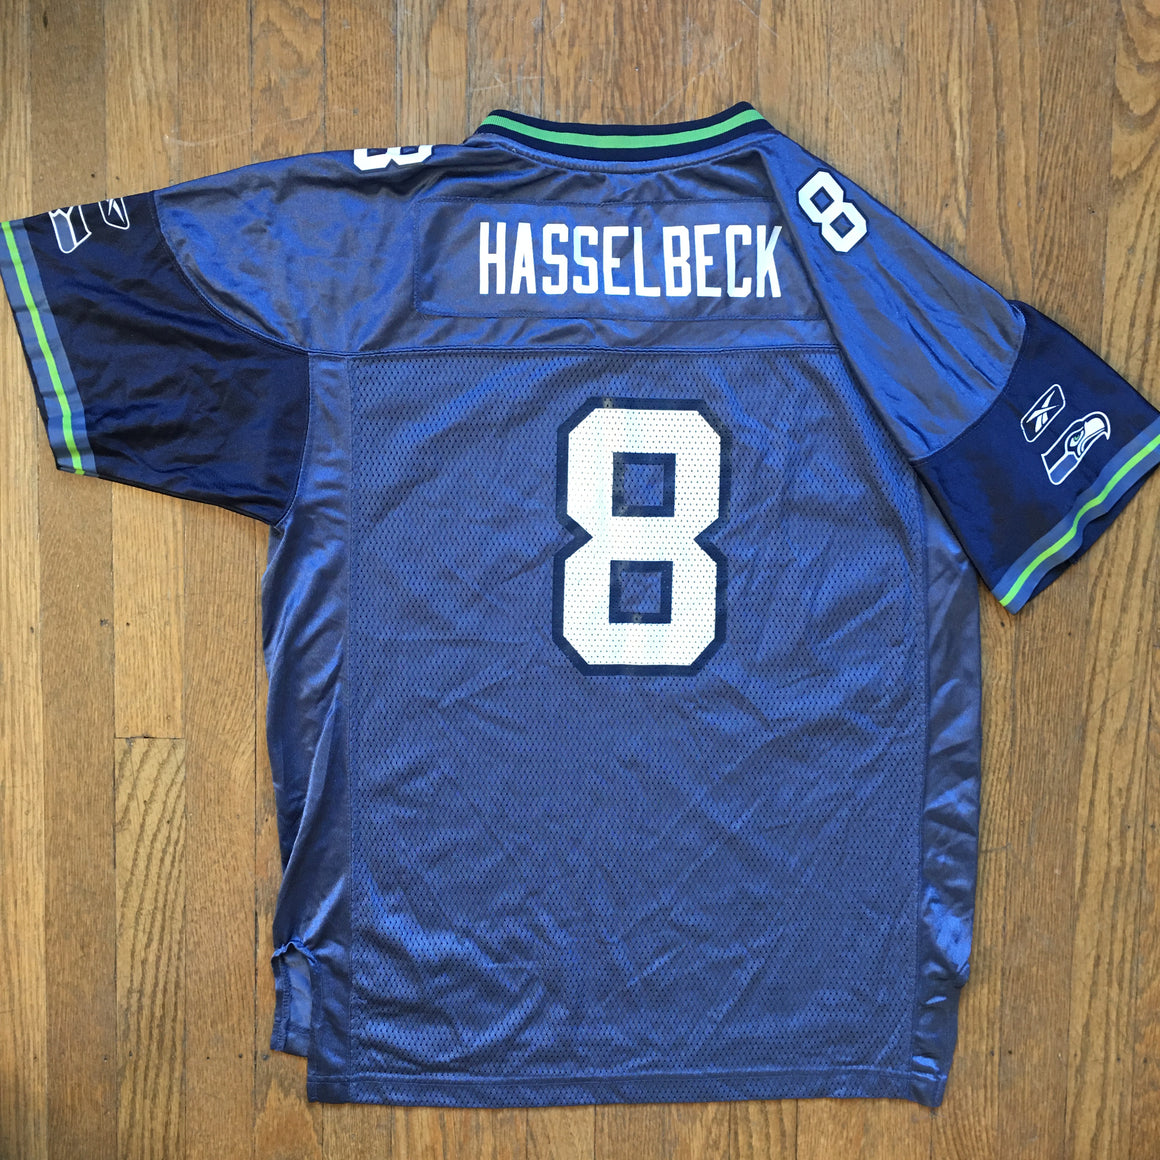 Seattle Seahawks Matt Hasselbeck jersey - Youth XL / adult S or M